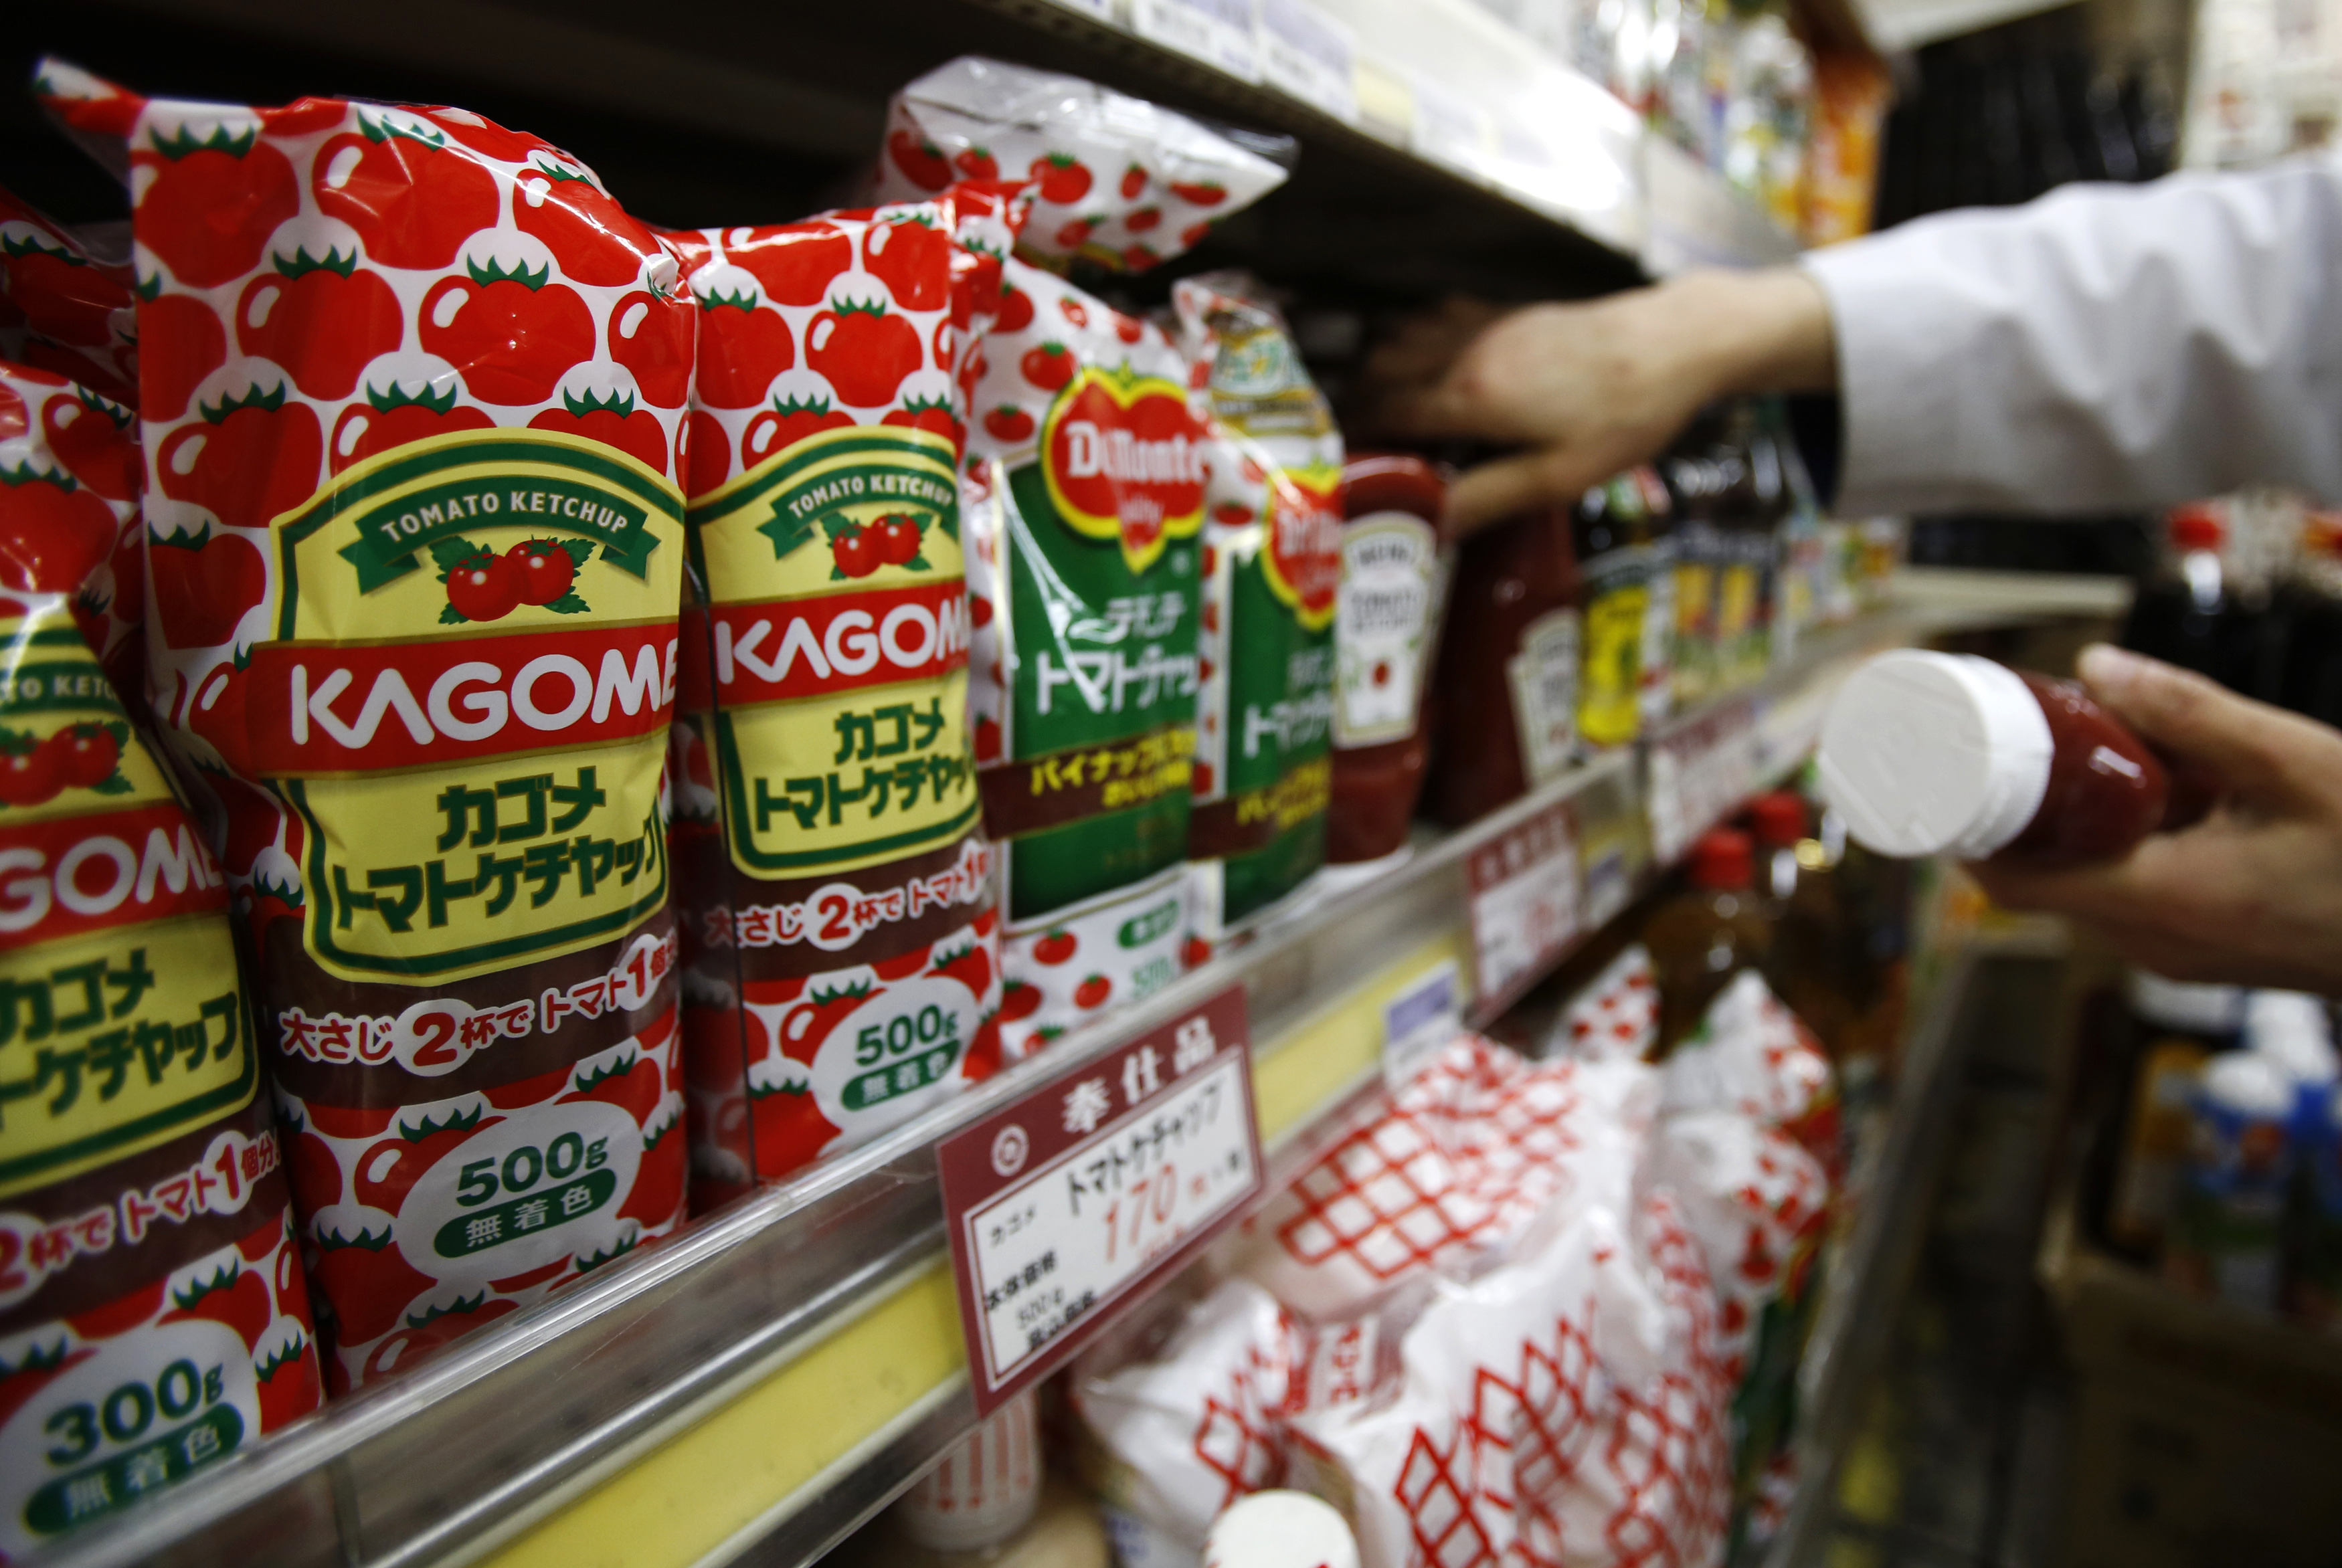 Kagome's tomato ketchup bottles are displayed with their price tag as a staff arranges tomato ketchup bottles of other brands at Yoshiike supermarket in Tokyo